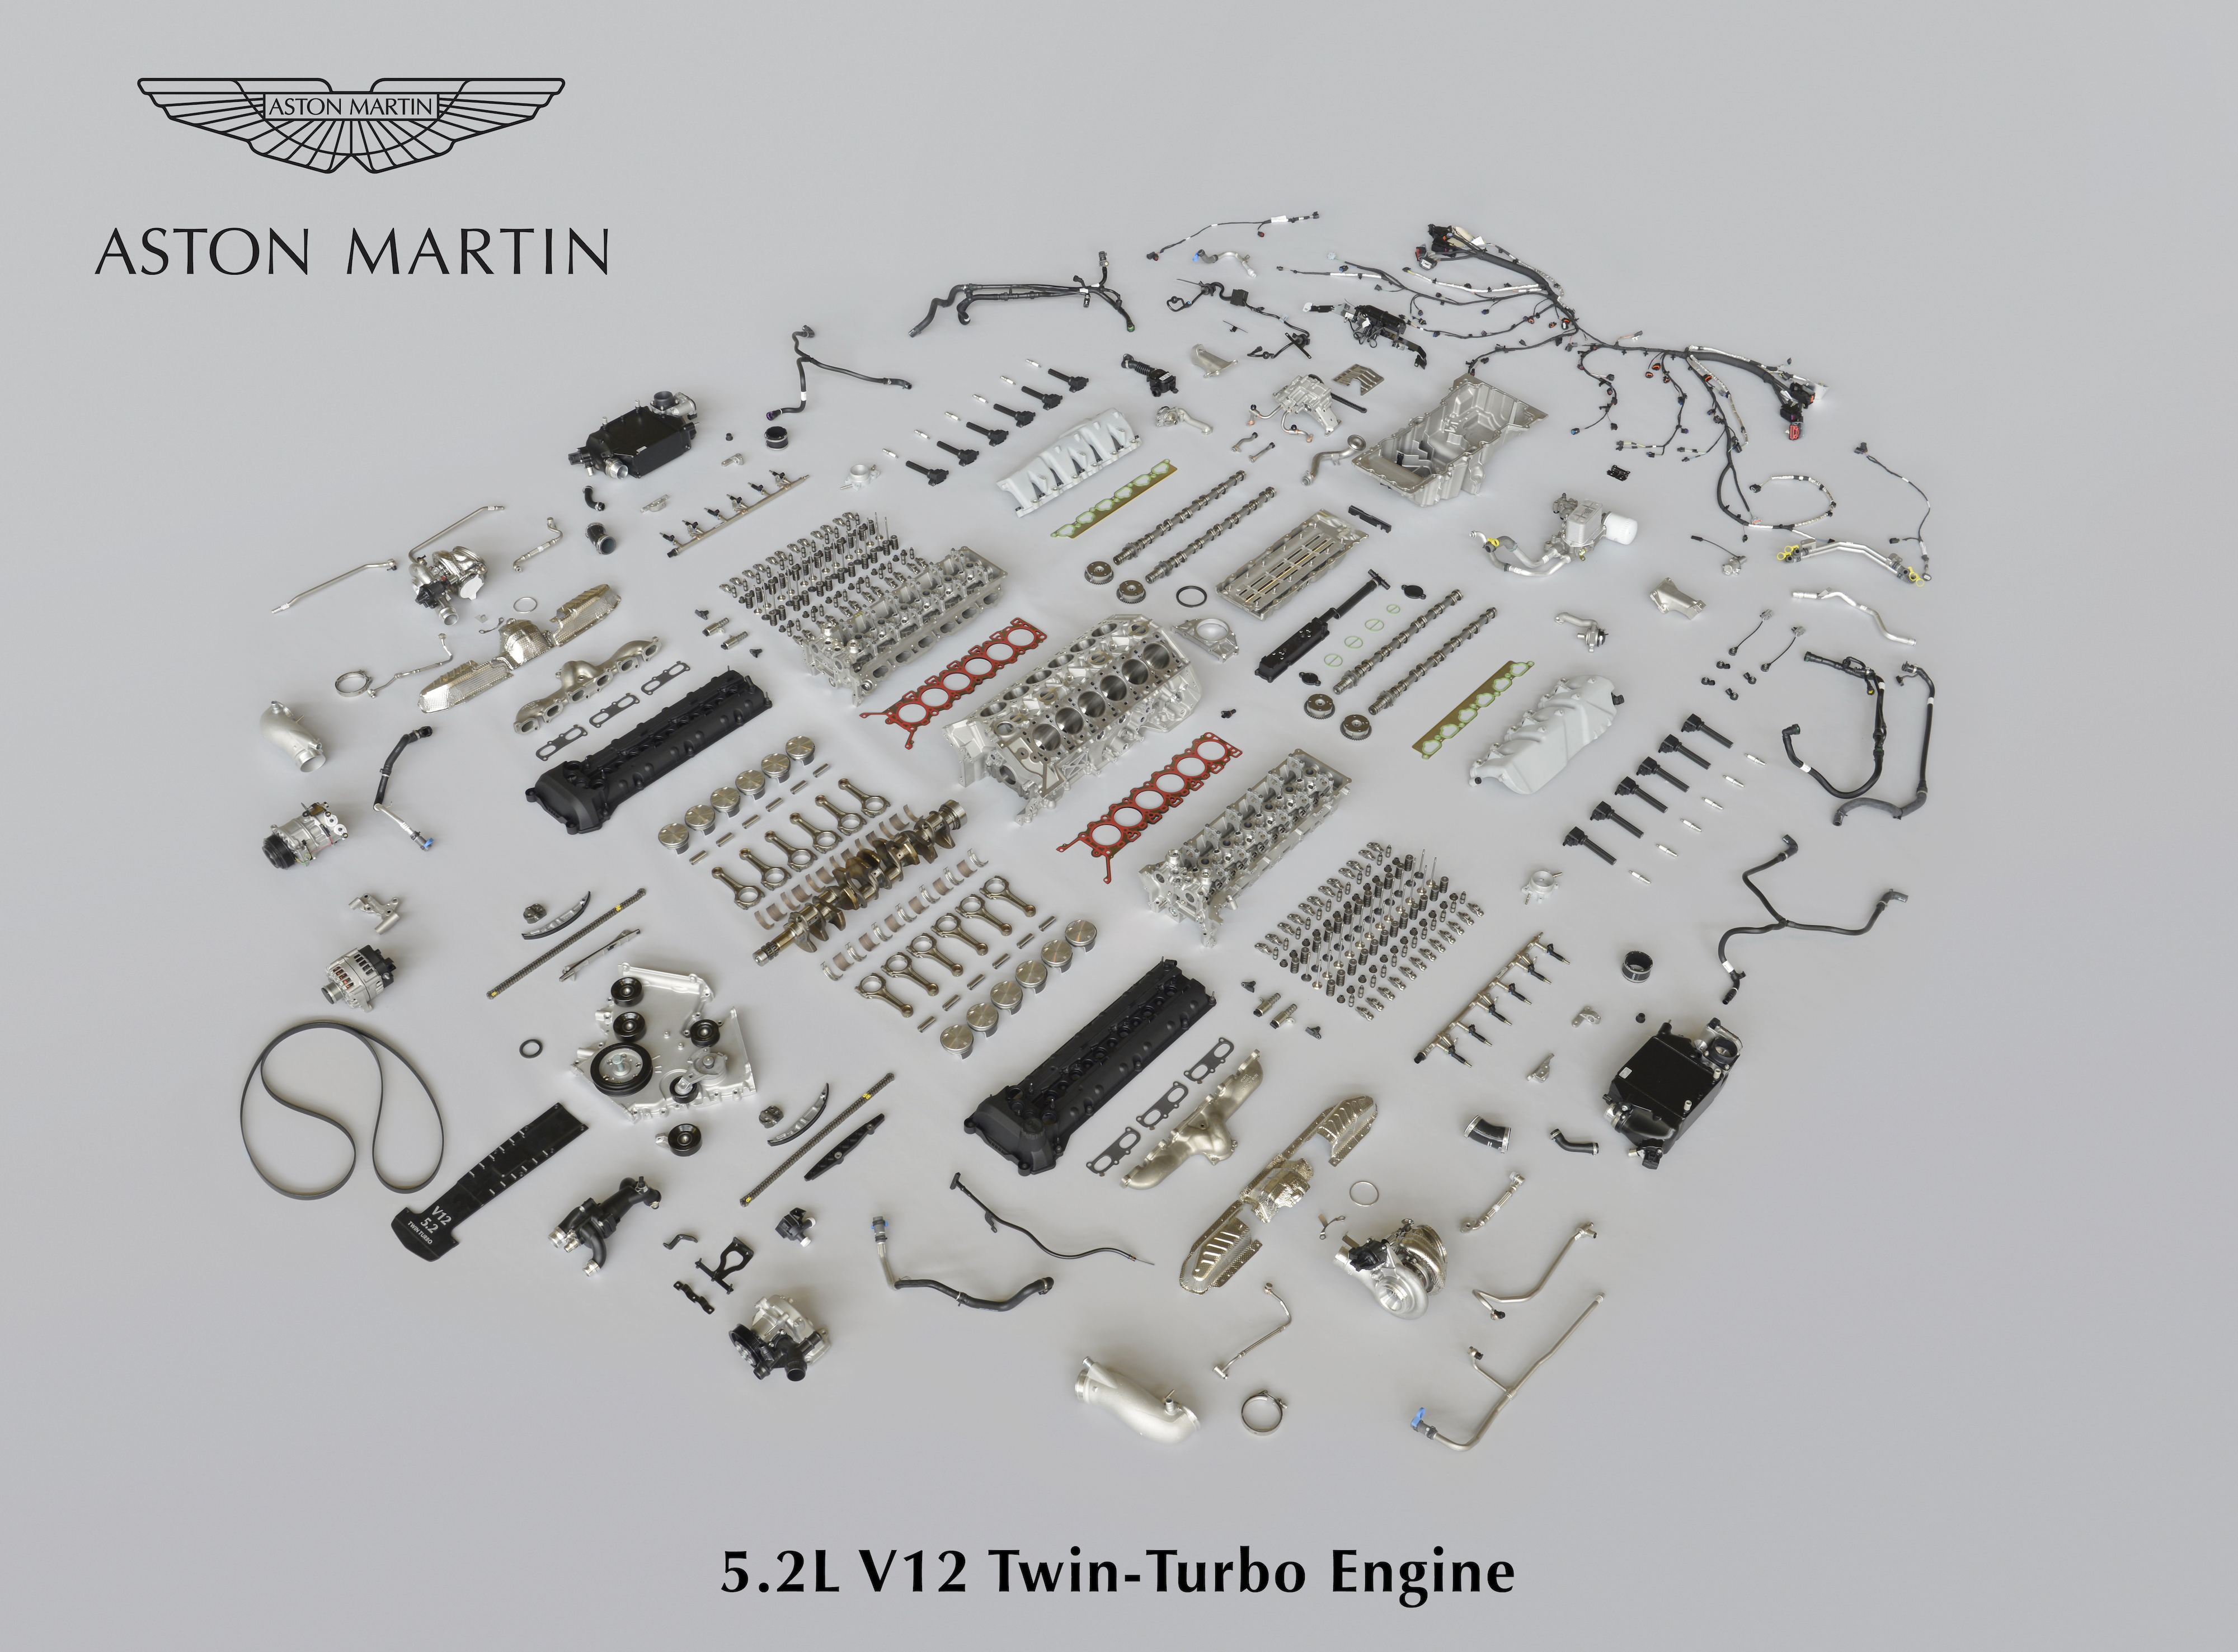 This Is What Aston Martin S New V12 Looks Like Before It S Put Together